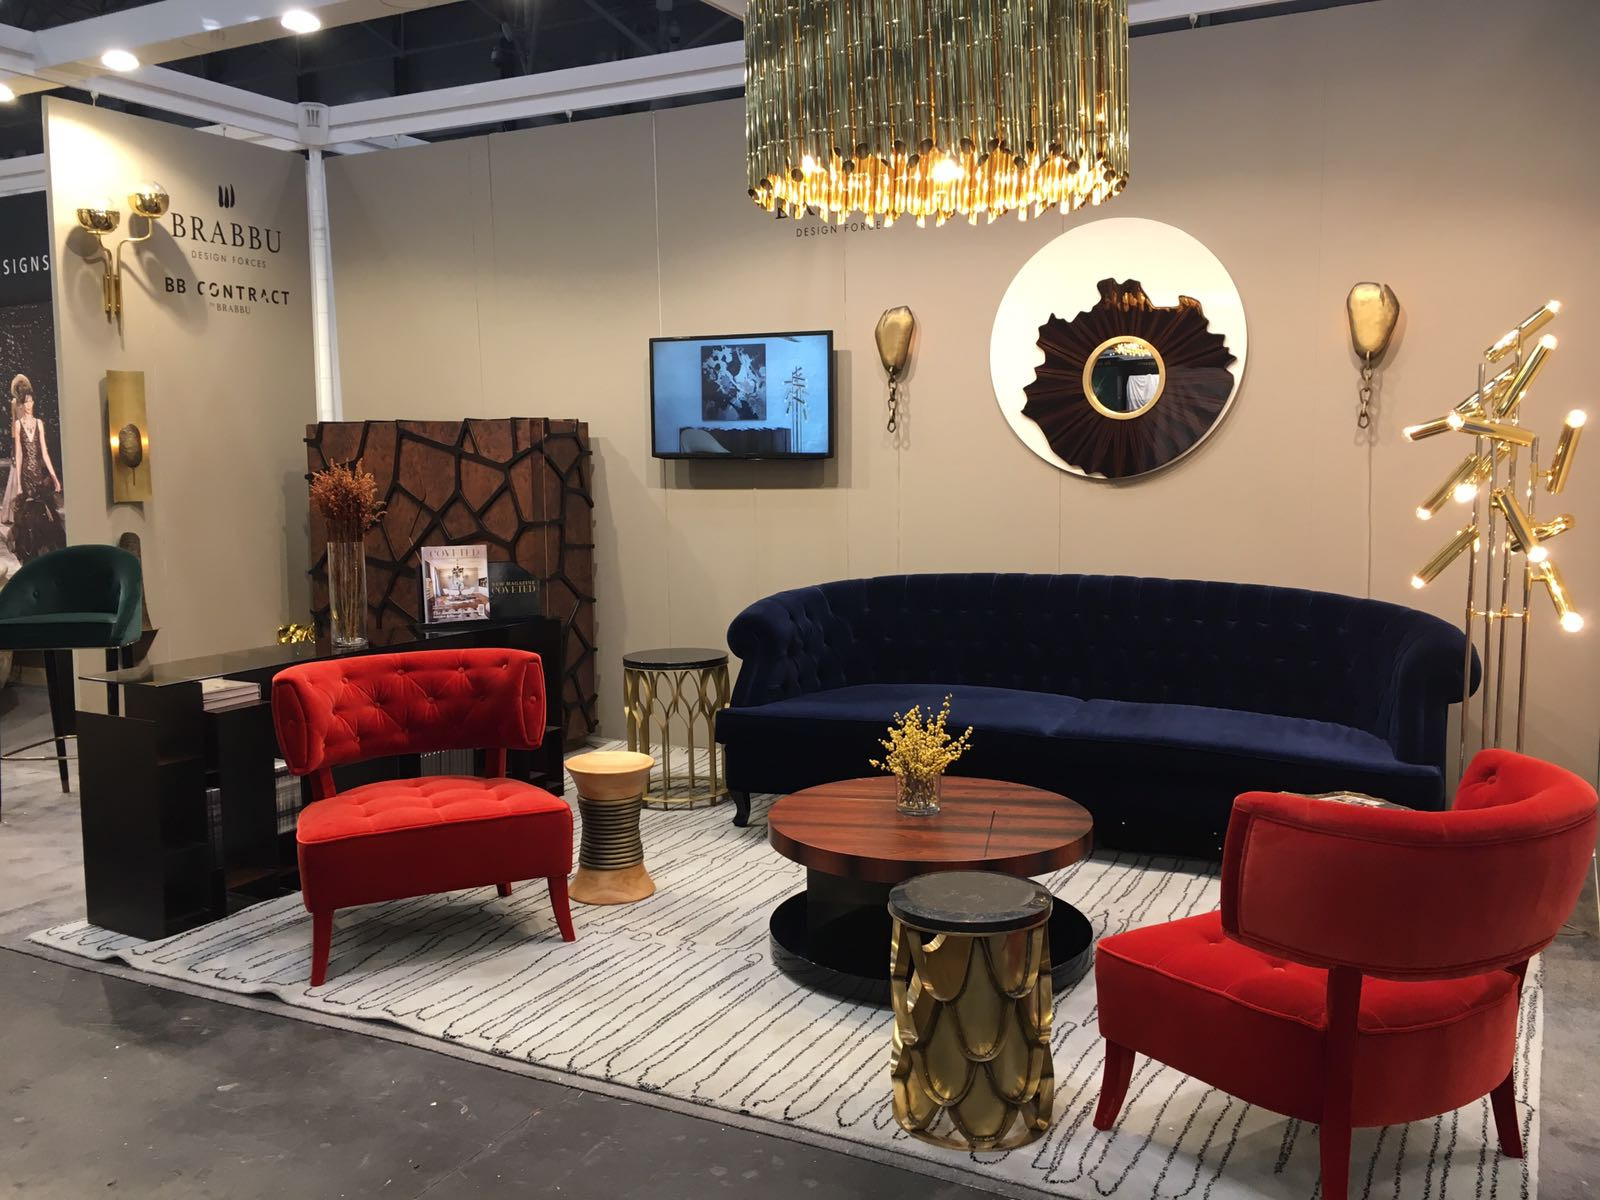 Highlights from BDNY 2016 bdny 2016 Highlights from BDNY 2016  251AC2E18BC857A7F4C9B2328F955196947D0DE6B950D646FF pimgpsh fullsize distr